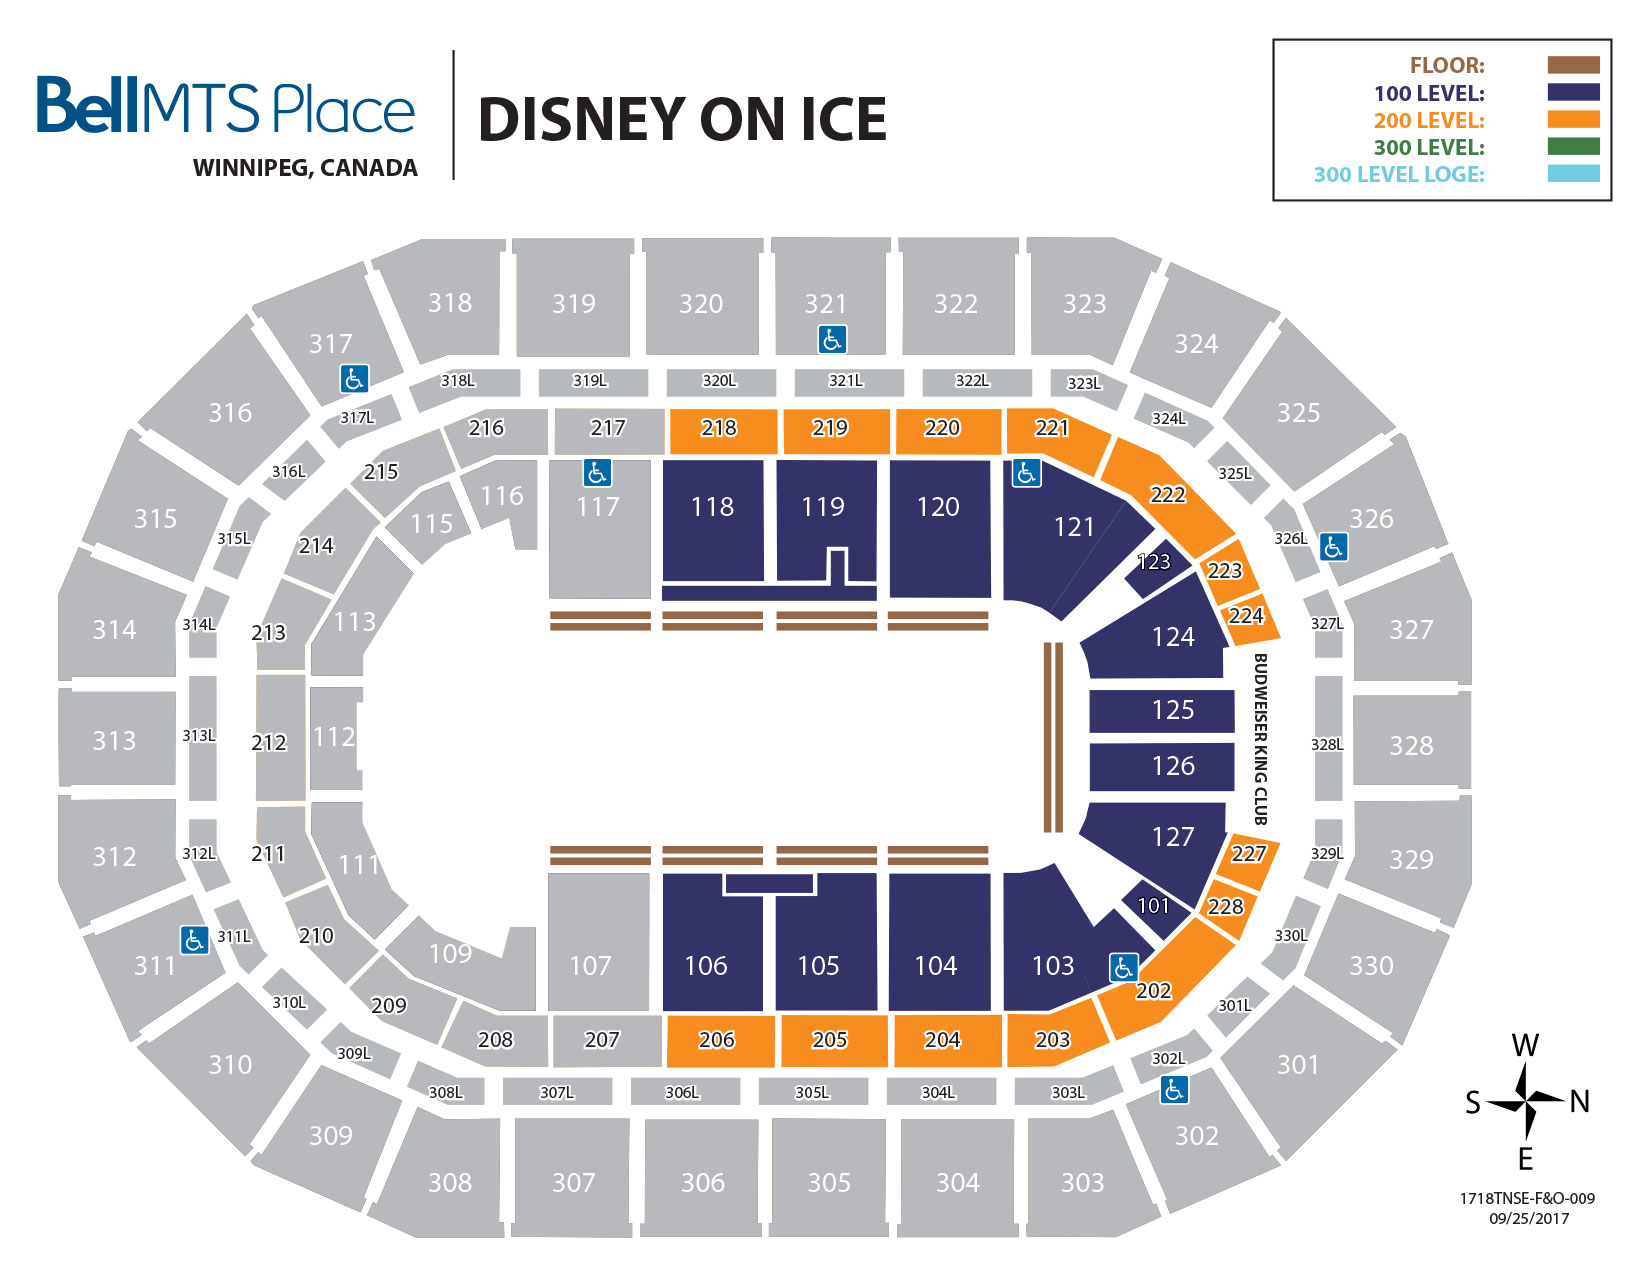 Bell MTS Place - Disney on Ice Seating